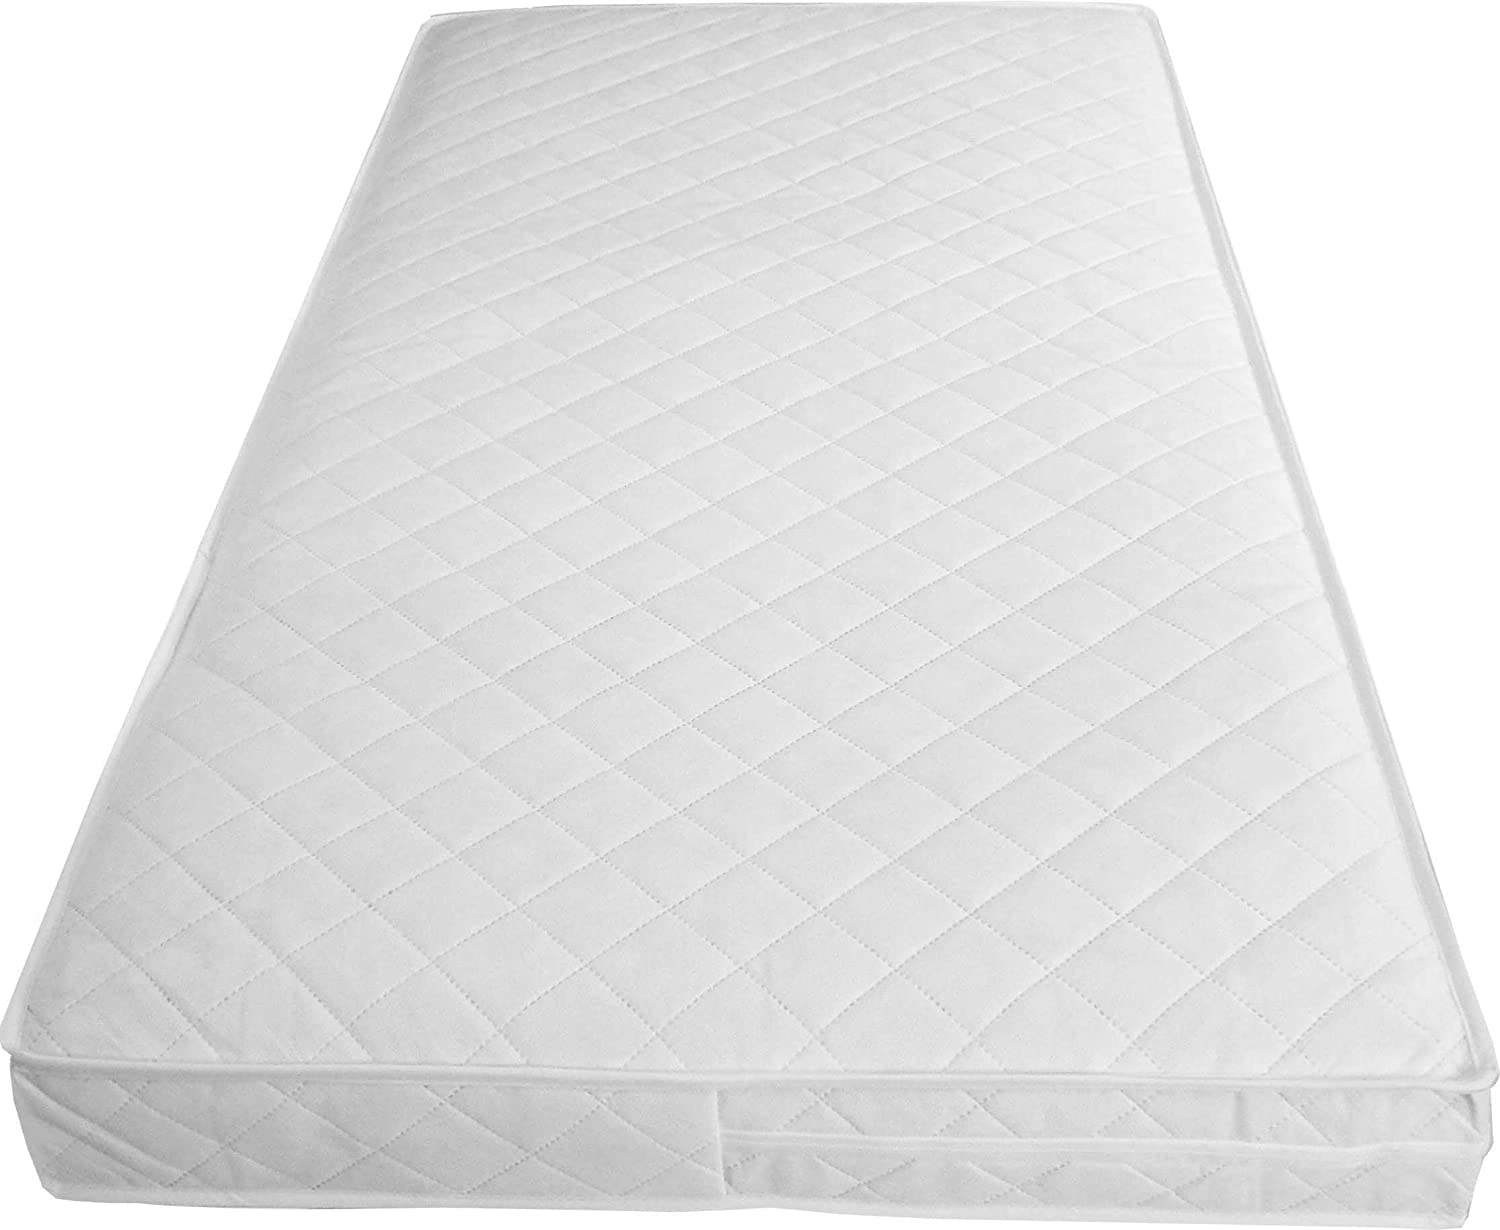 mother nurture luxury pocket spring cot mattress british made with luxury quilted cover and spare amazoncouk baby - Spring Mattress